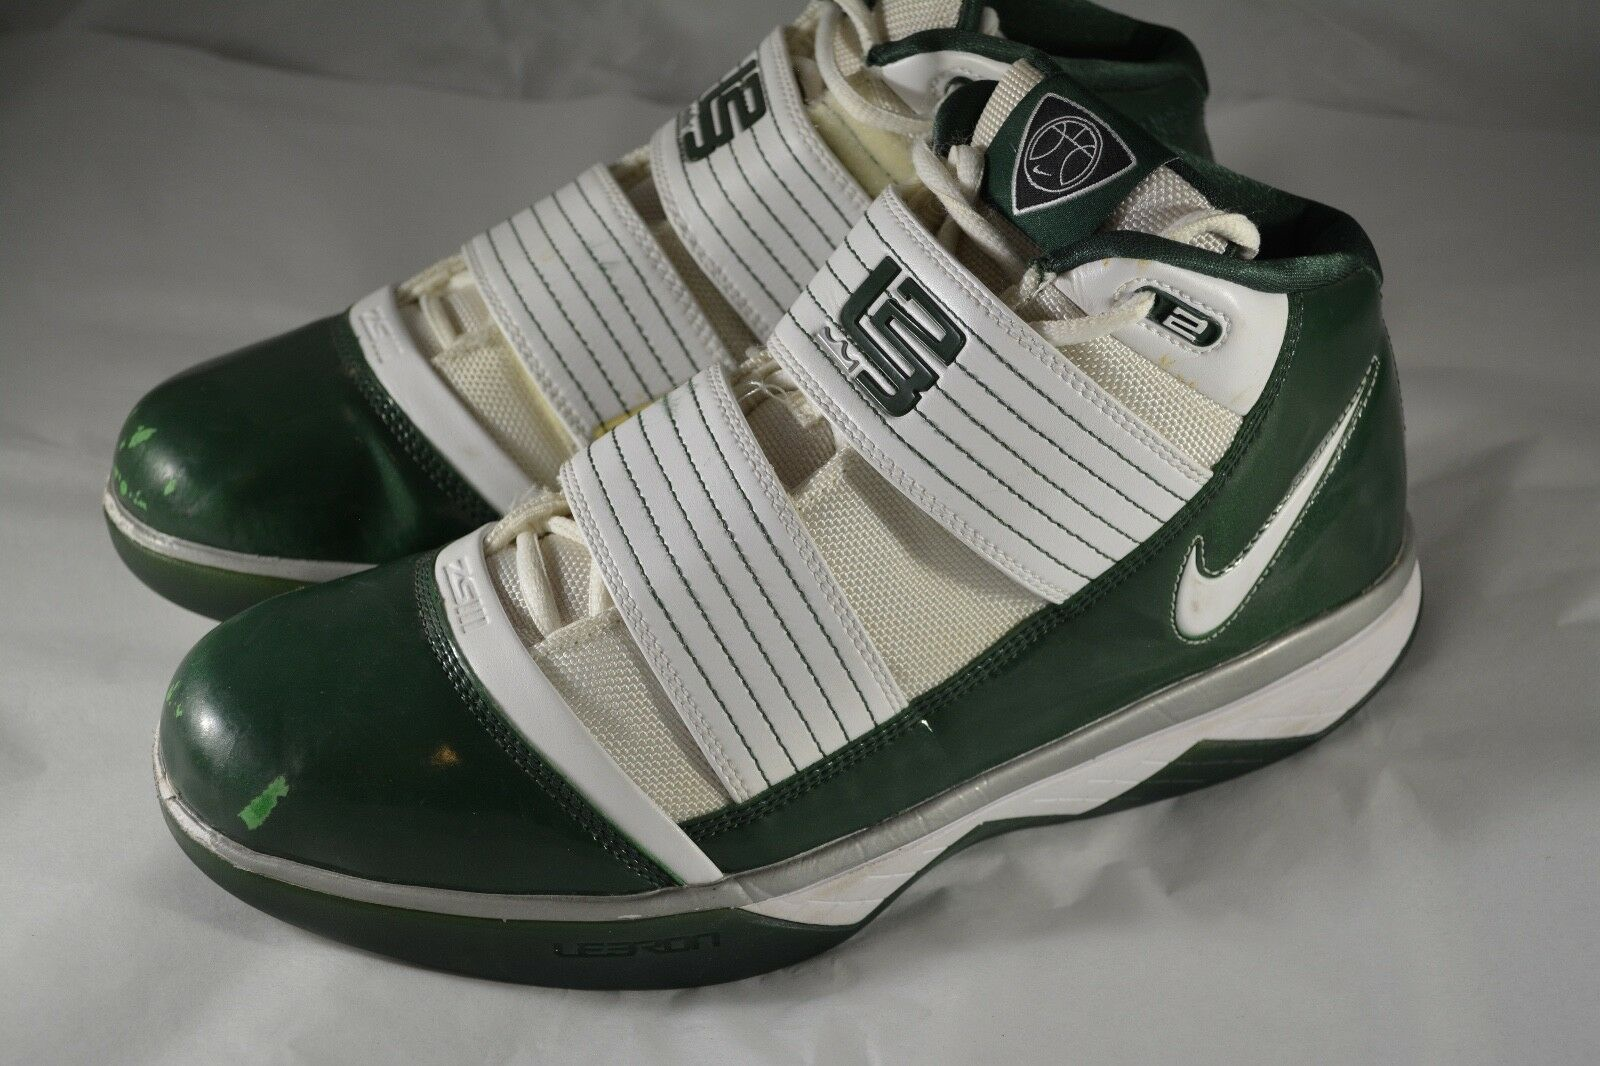 Mens NIKE LEBRON JAMES Zoom Soldier III 3 Green White Basketball shoes Size 10.5